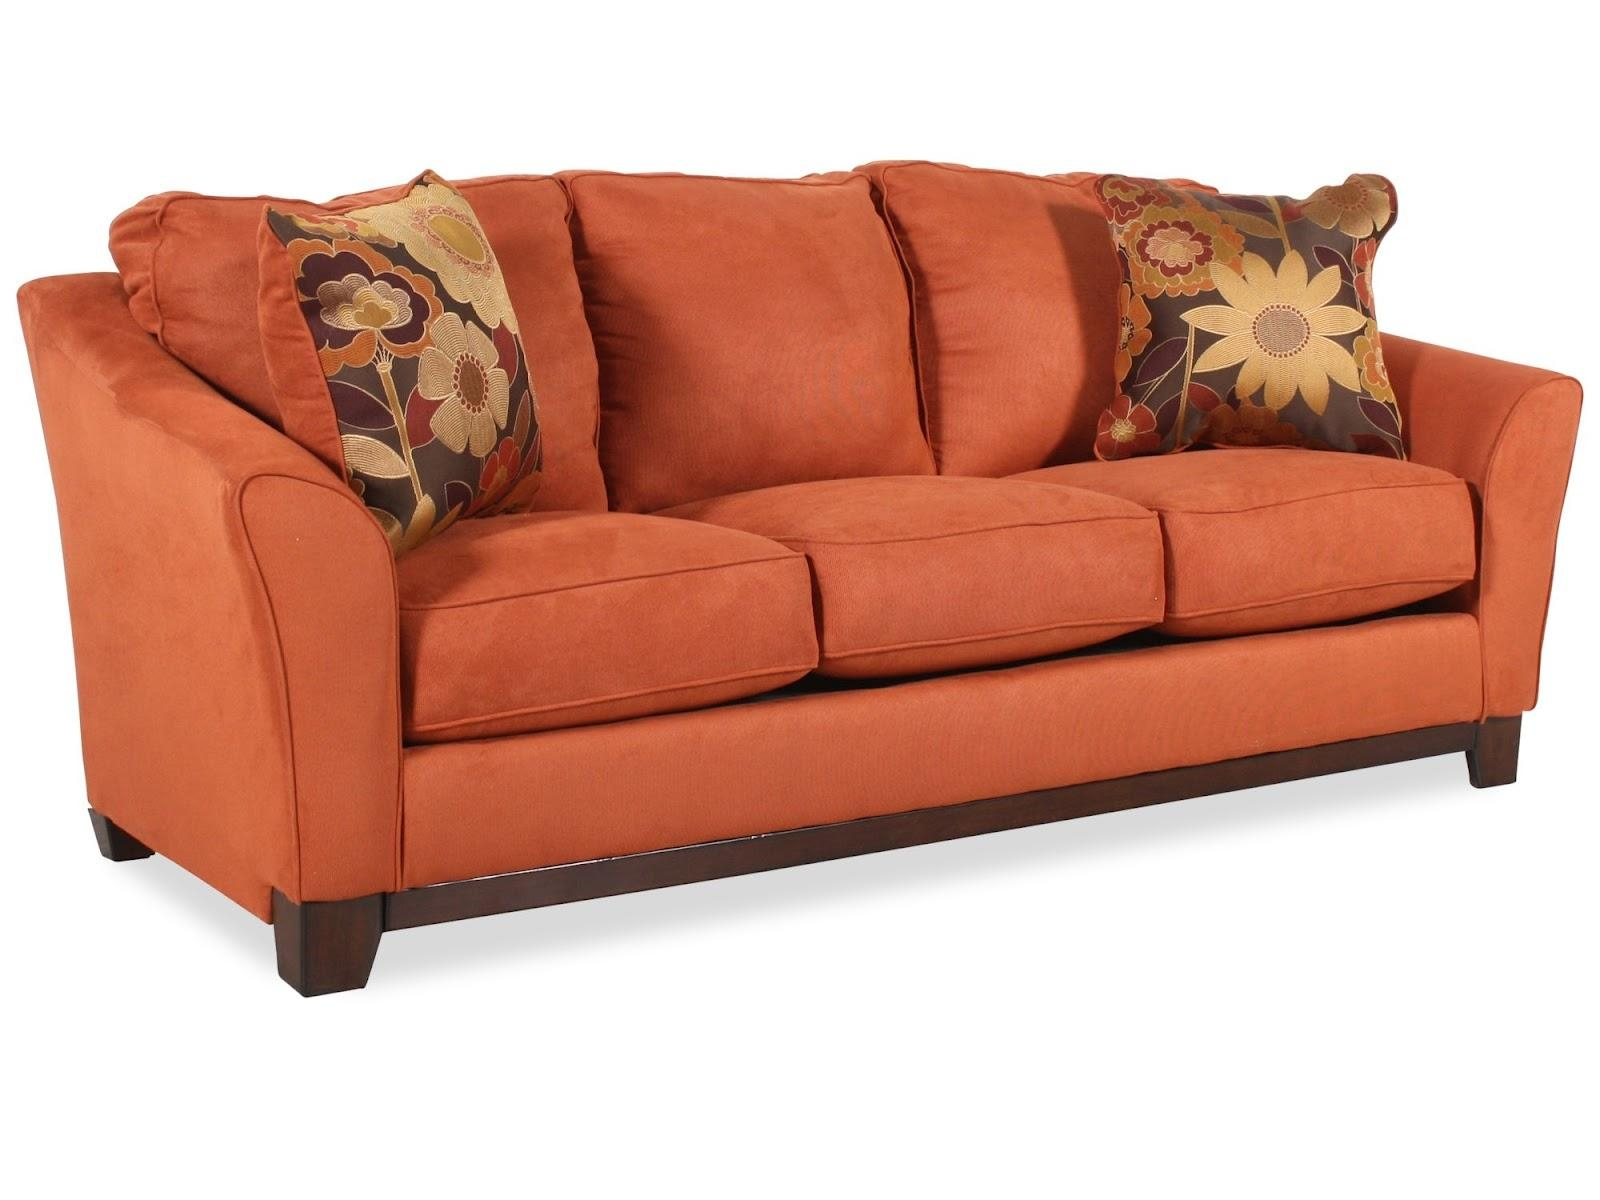 Alan White Sofa With Concept Photo 6312 | Kengire Throughout Alan White Sofas (View 19 of 20)